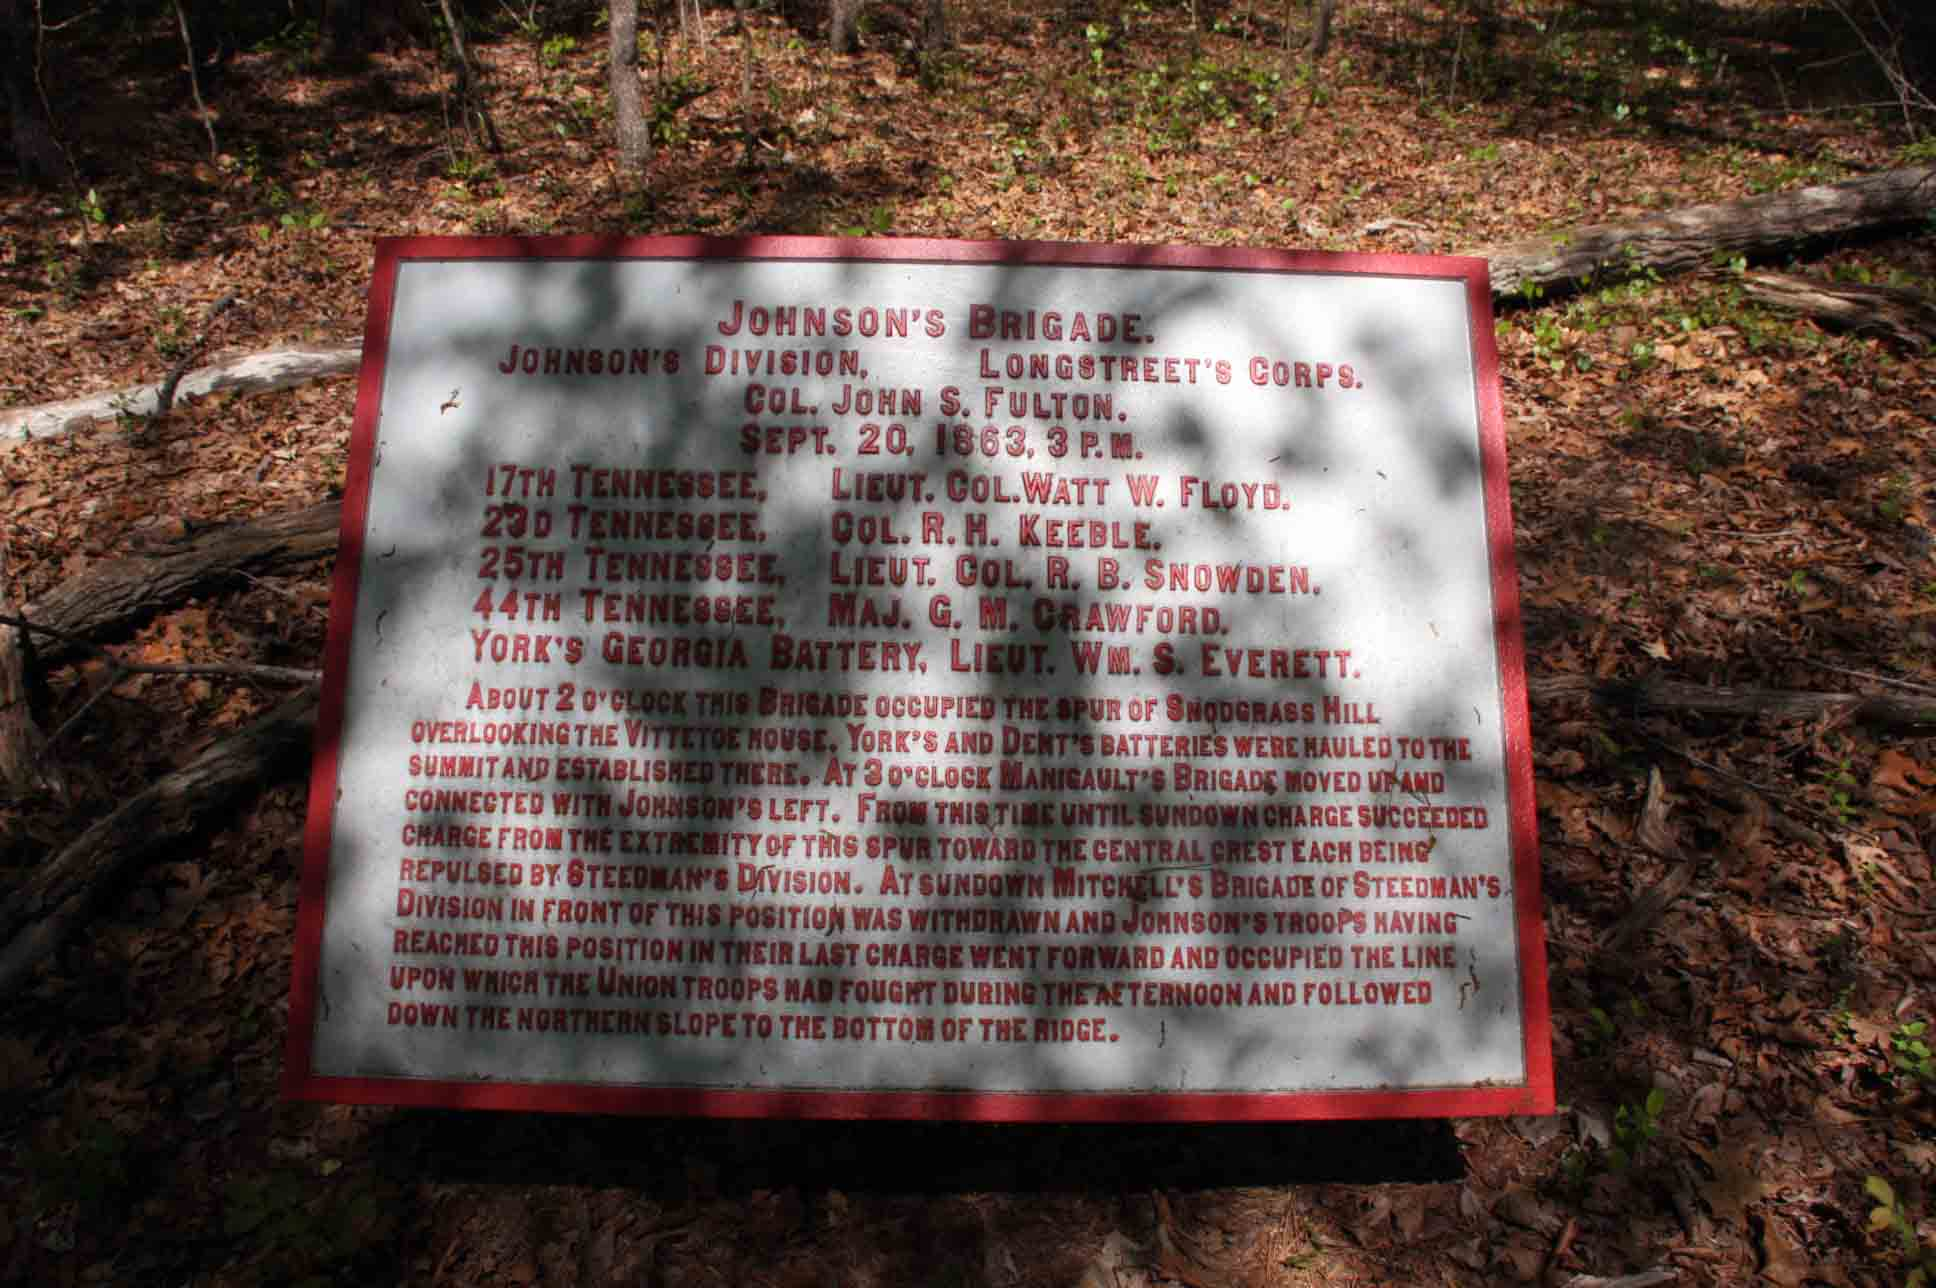 Johnson's Brigade Plaque, click photo to enlarge.